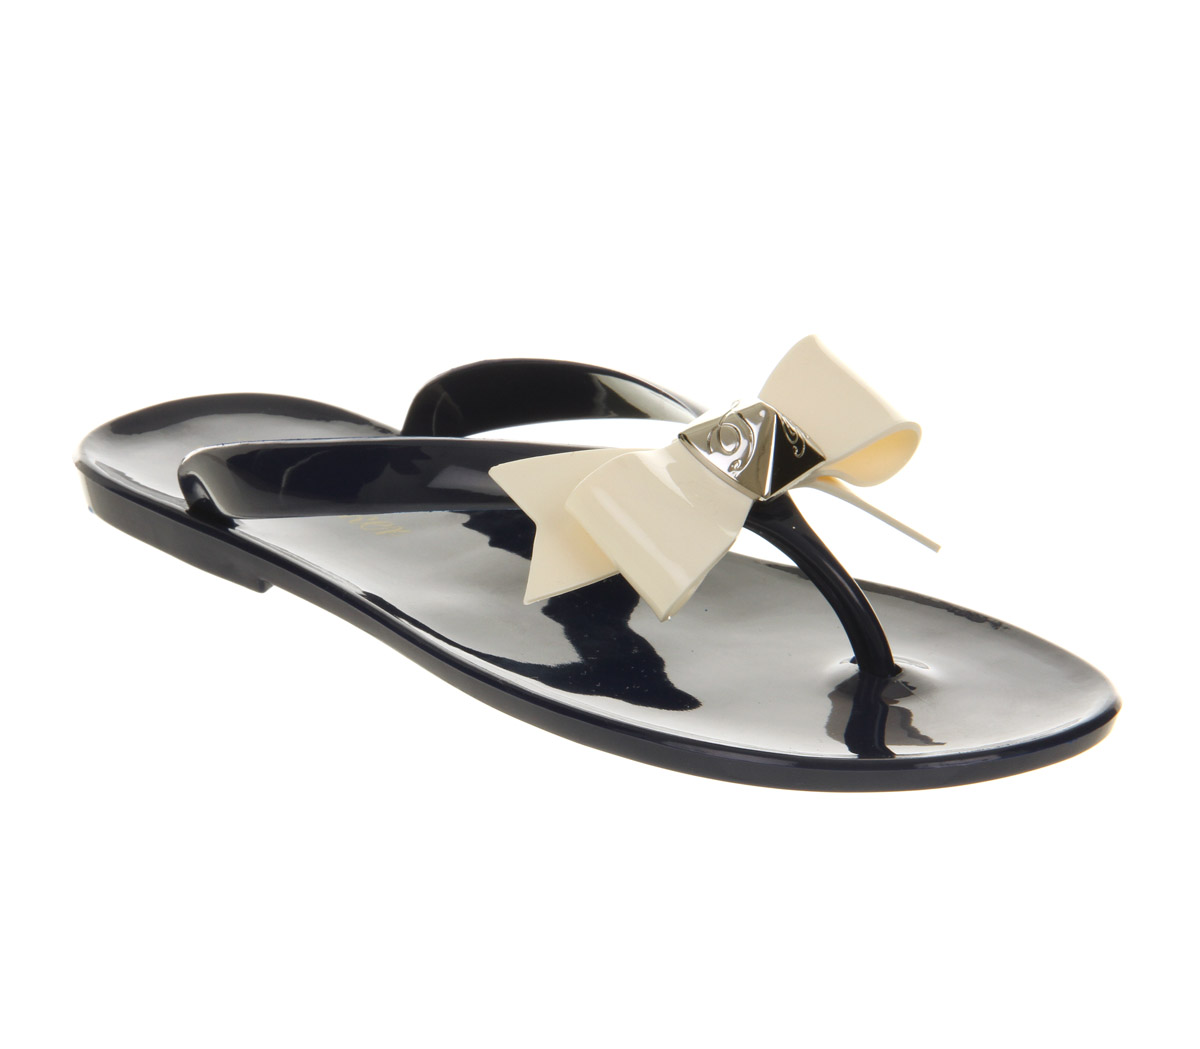 Womens-Ted-Baker-Polee-Flip-Flop-Dark-Blue-Cream-Exclusive-Sandals